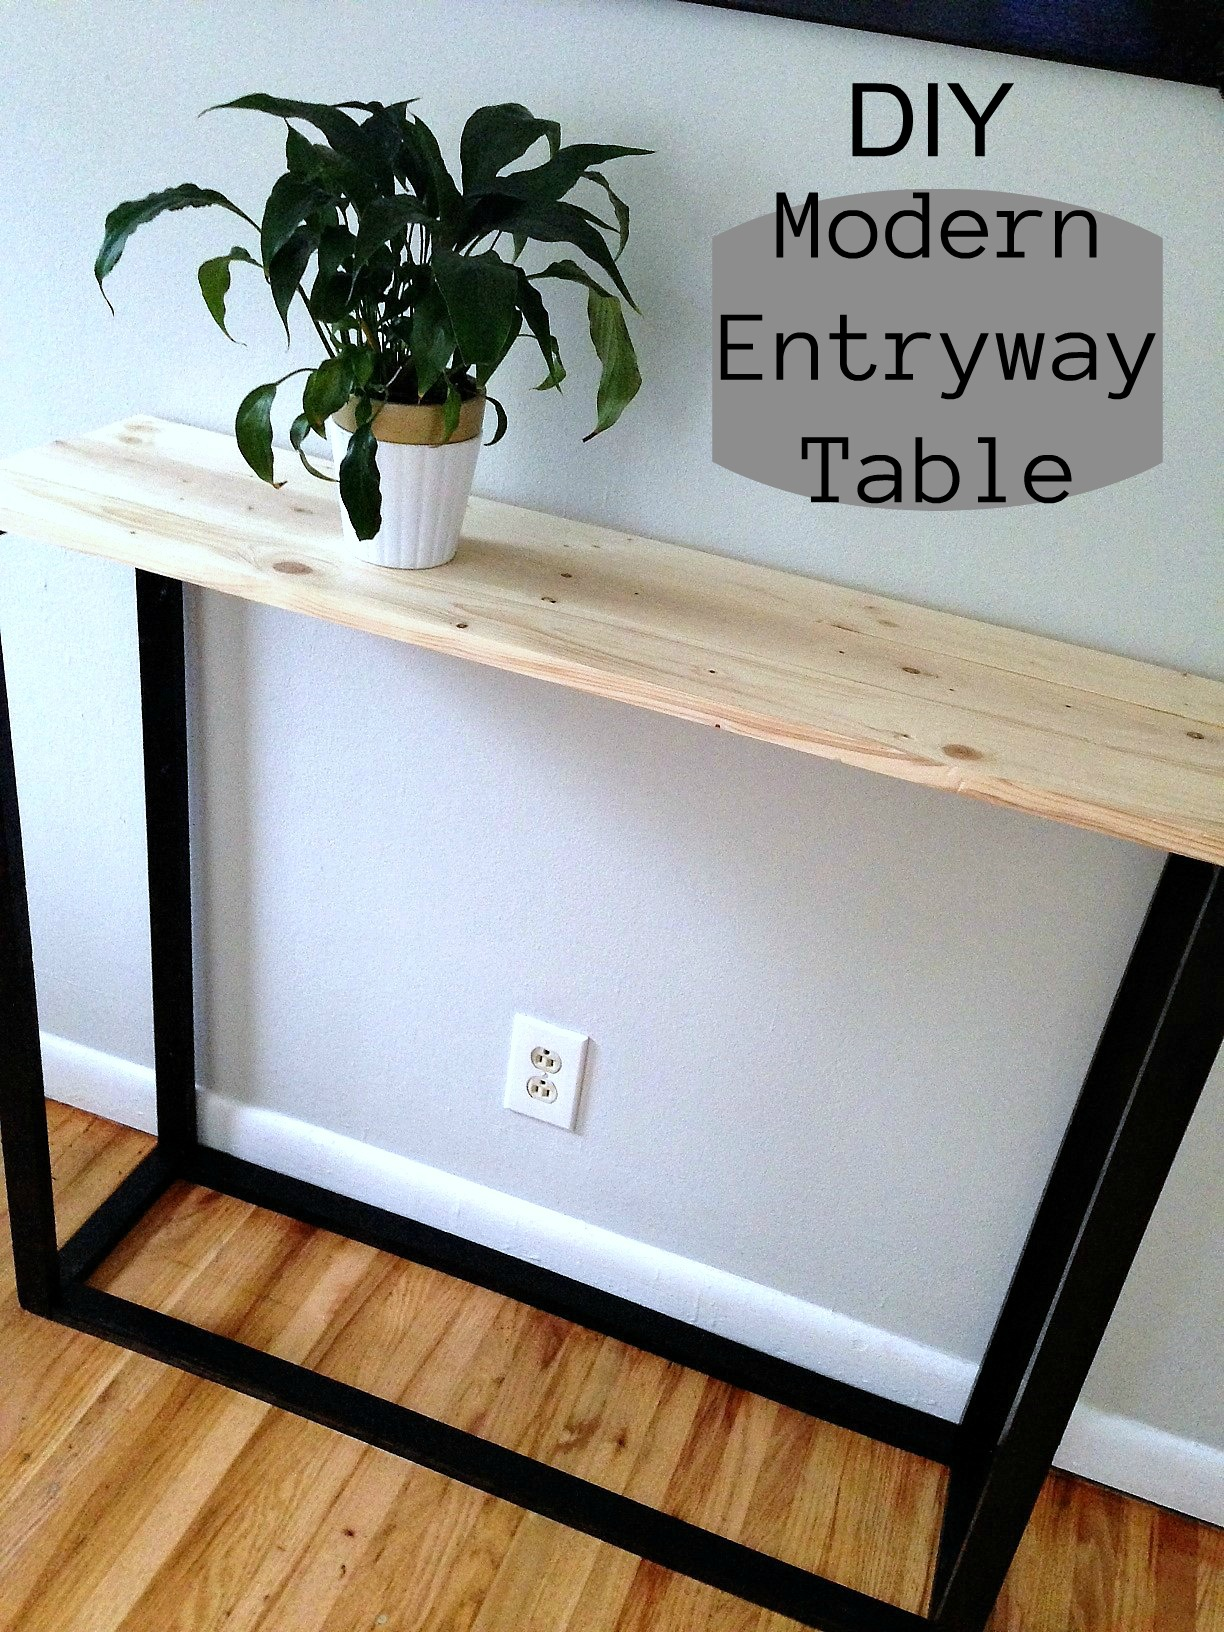 ddiy modern entryway table